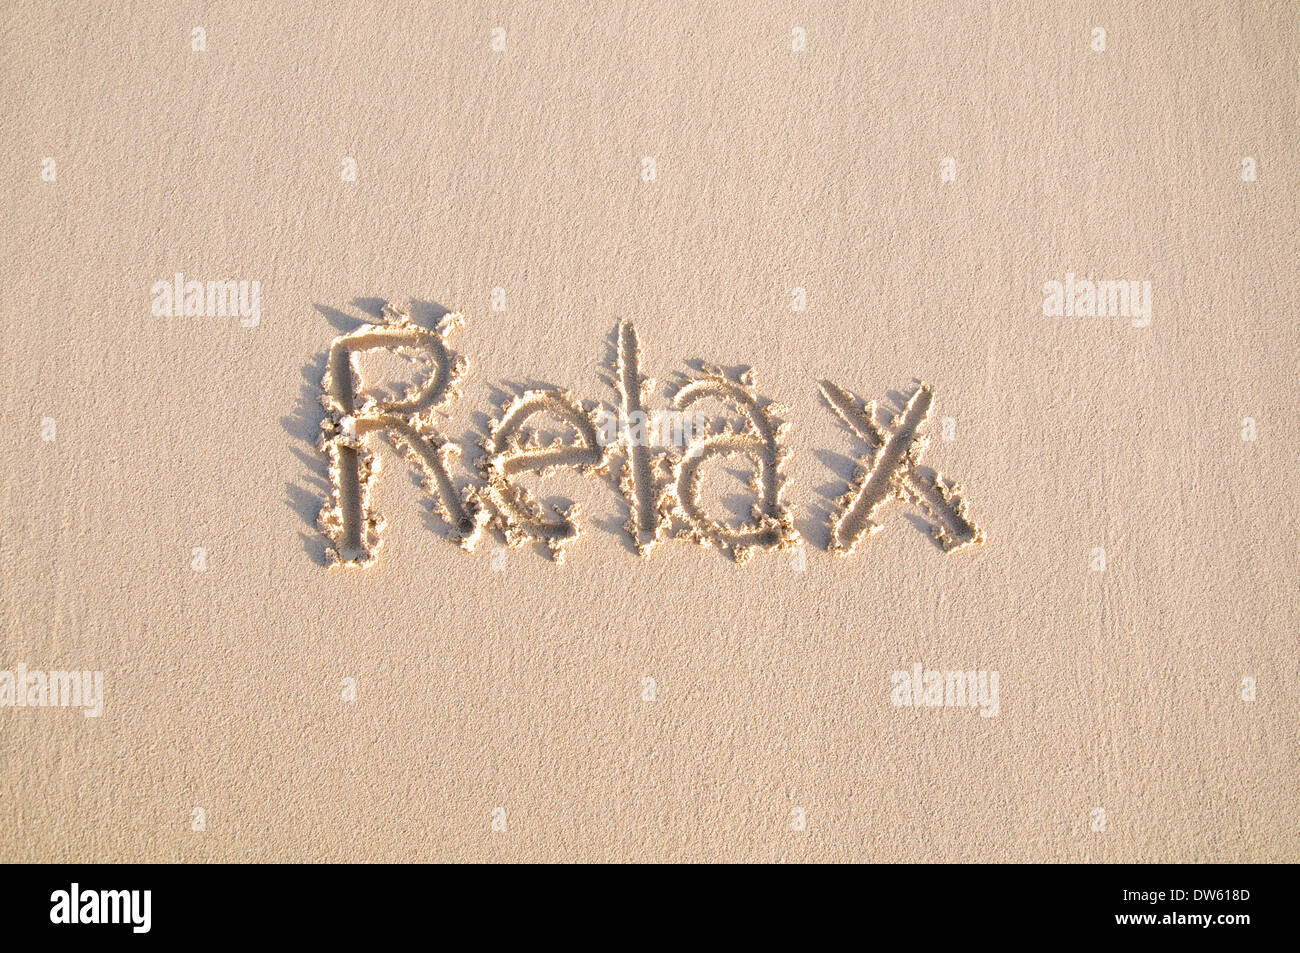 Word 'Relax' written on a sand. - Stock Image